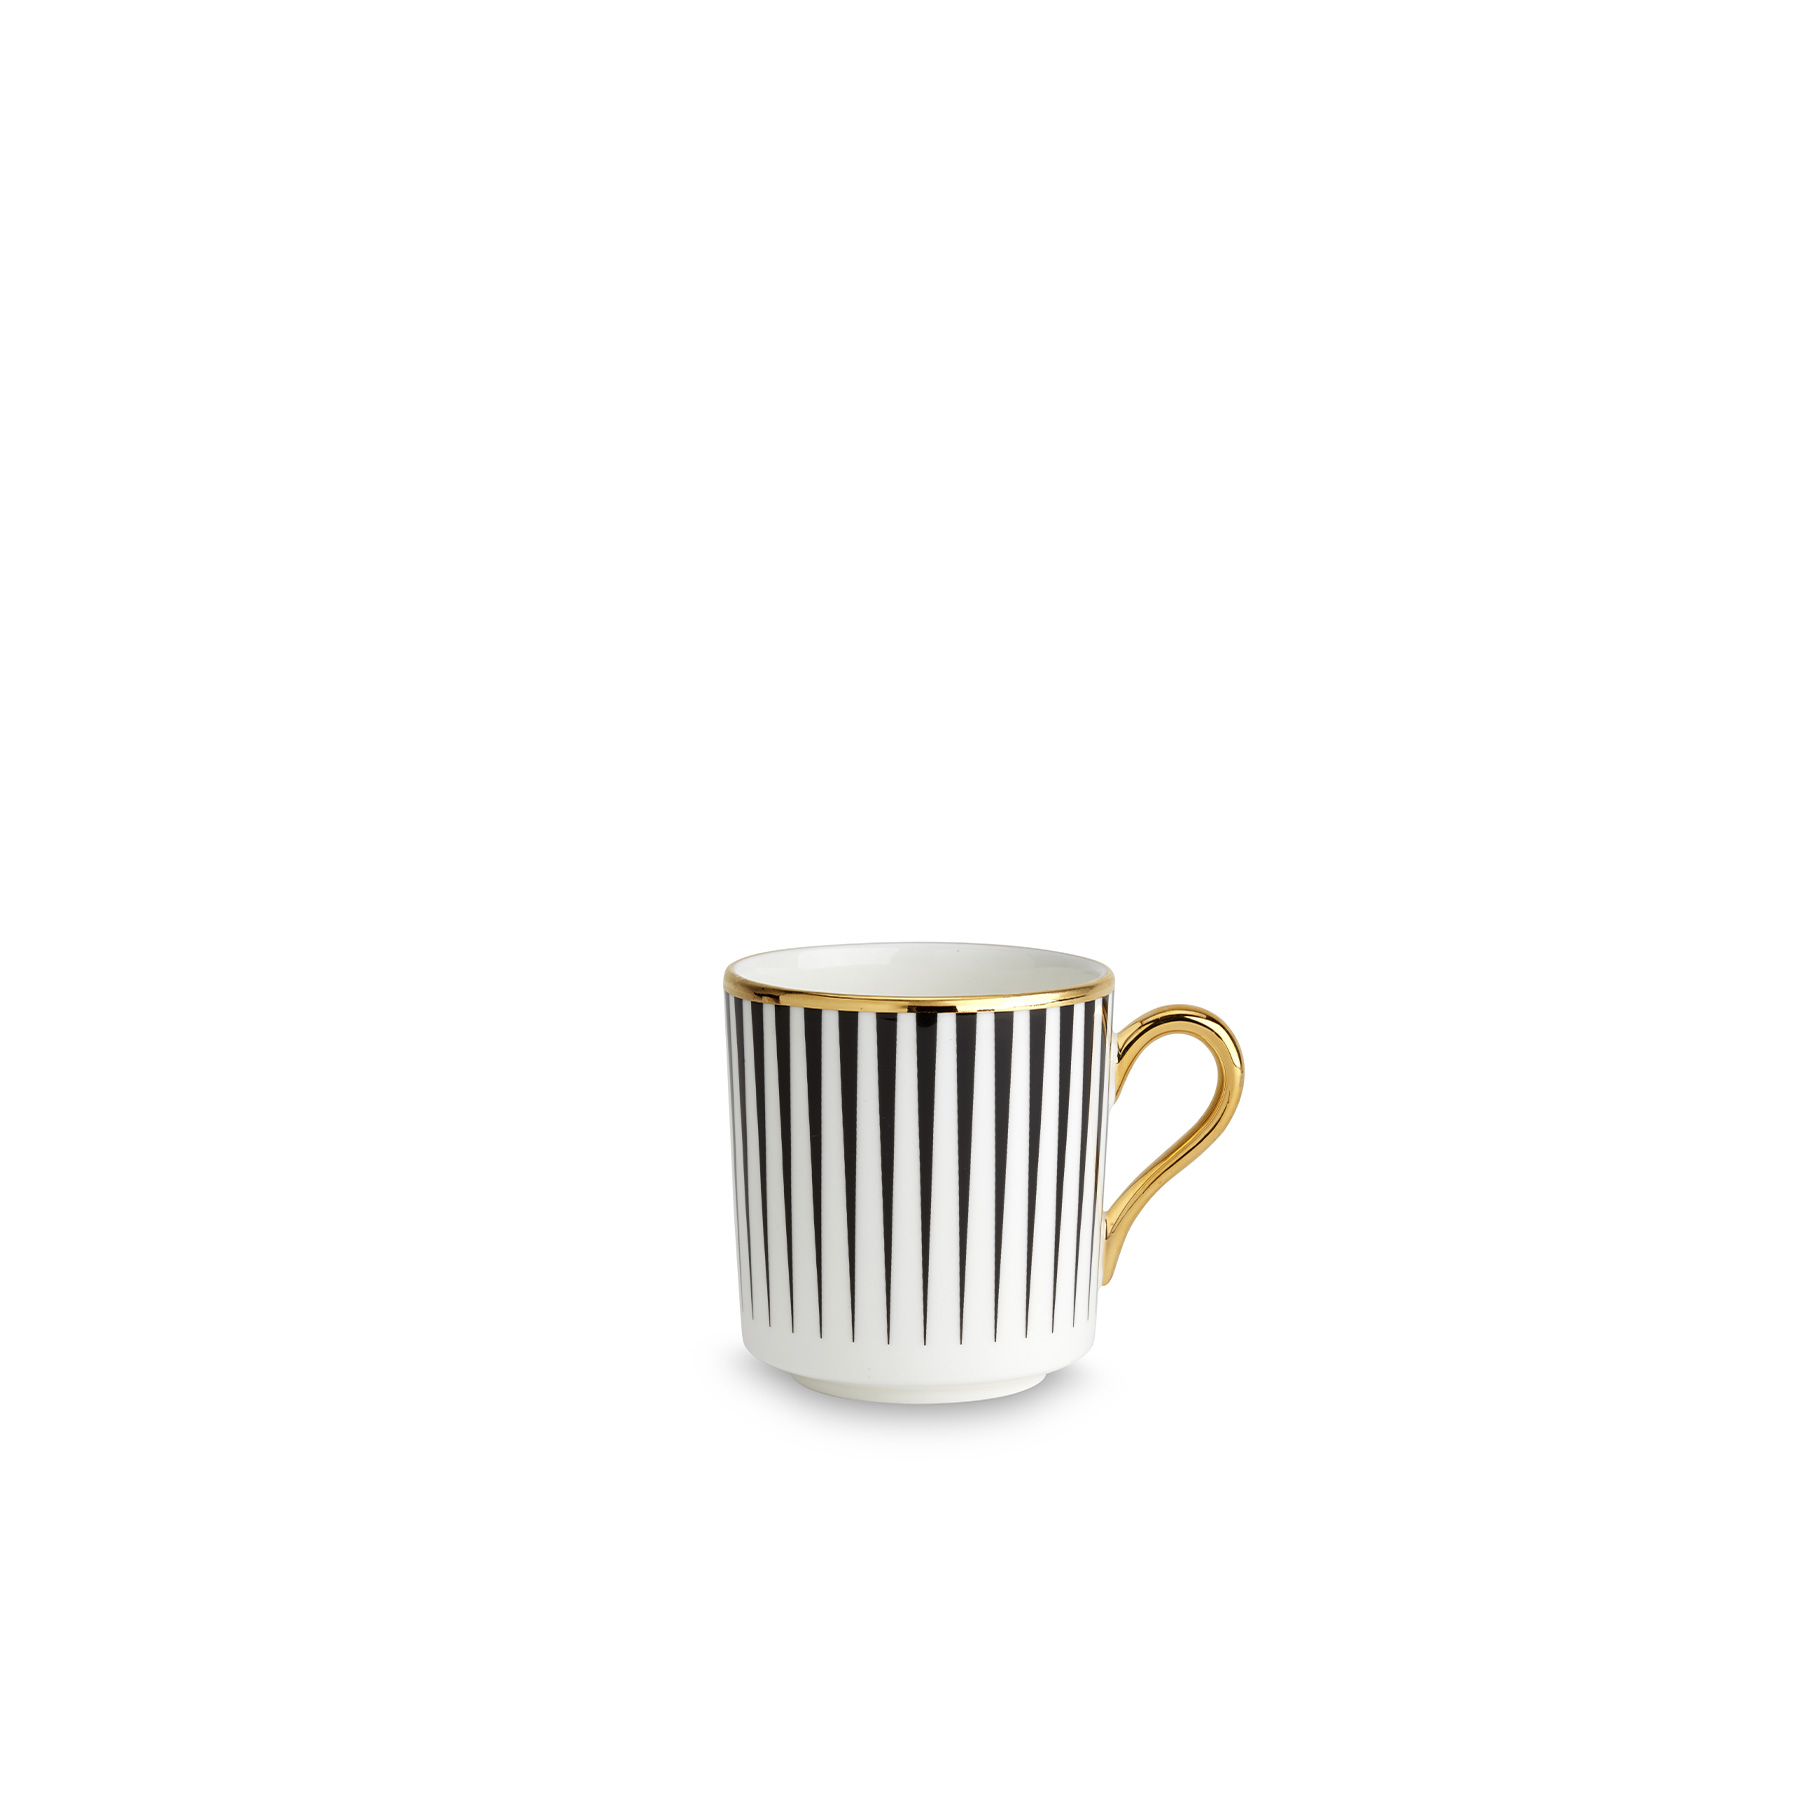 Lustre Espresso Cup Black - Lustre, conceived by award-winning designer Bethan Gray uses a fine bone china body paired with 22-carat gold and black decals, and finished with hand gilded details. The collection features a reinterpretation of Bethan's hand-drawn Dhow pattern originally inspired by the billowing sails of Oman's distinctive sailing boats. Possible only by hand, the pattern is meticulously applied in three separate pieces in a pattern that is complex with its curvatures. The decals of 22-carat gold and black are fired, hand finished with 22-carat gold and finally fired for a second time. Hand wash only.  | Matter of Stuff